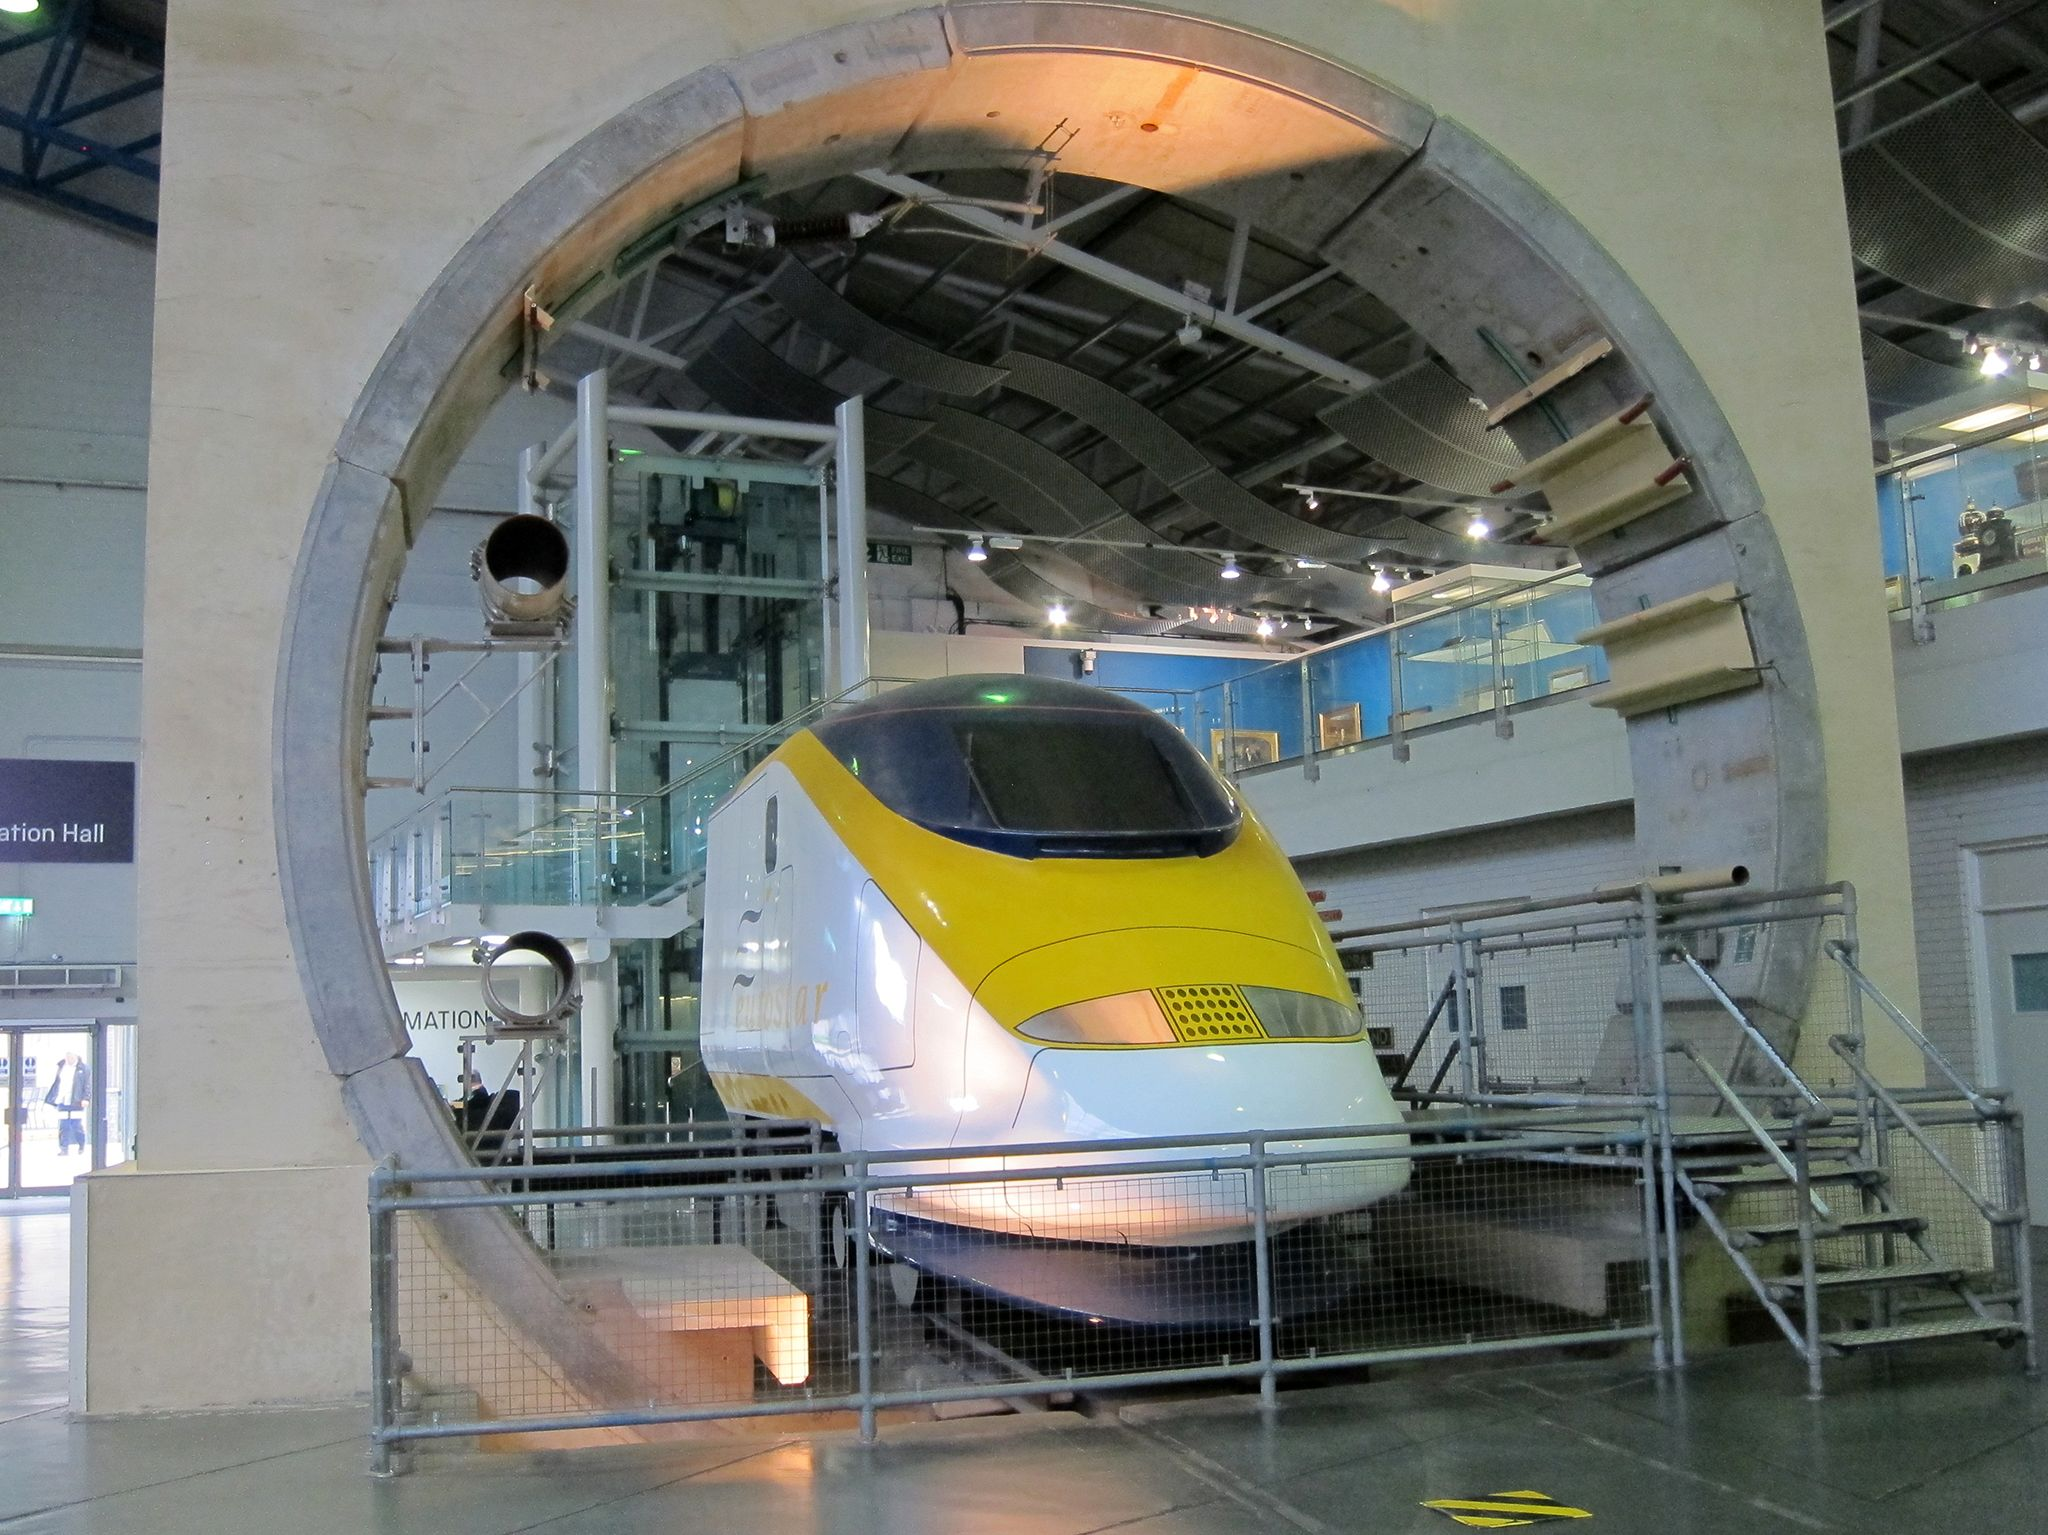 The front of the Eurostar train at National Railway Museum.  The Eurostar is featured on several... [Photo of the day - June 2019]